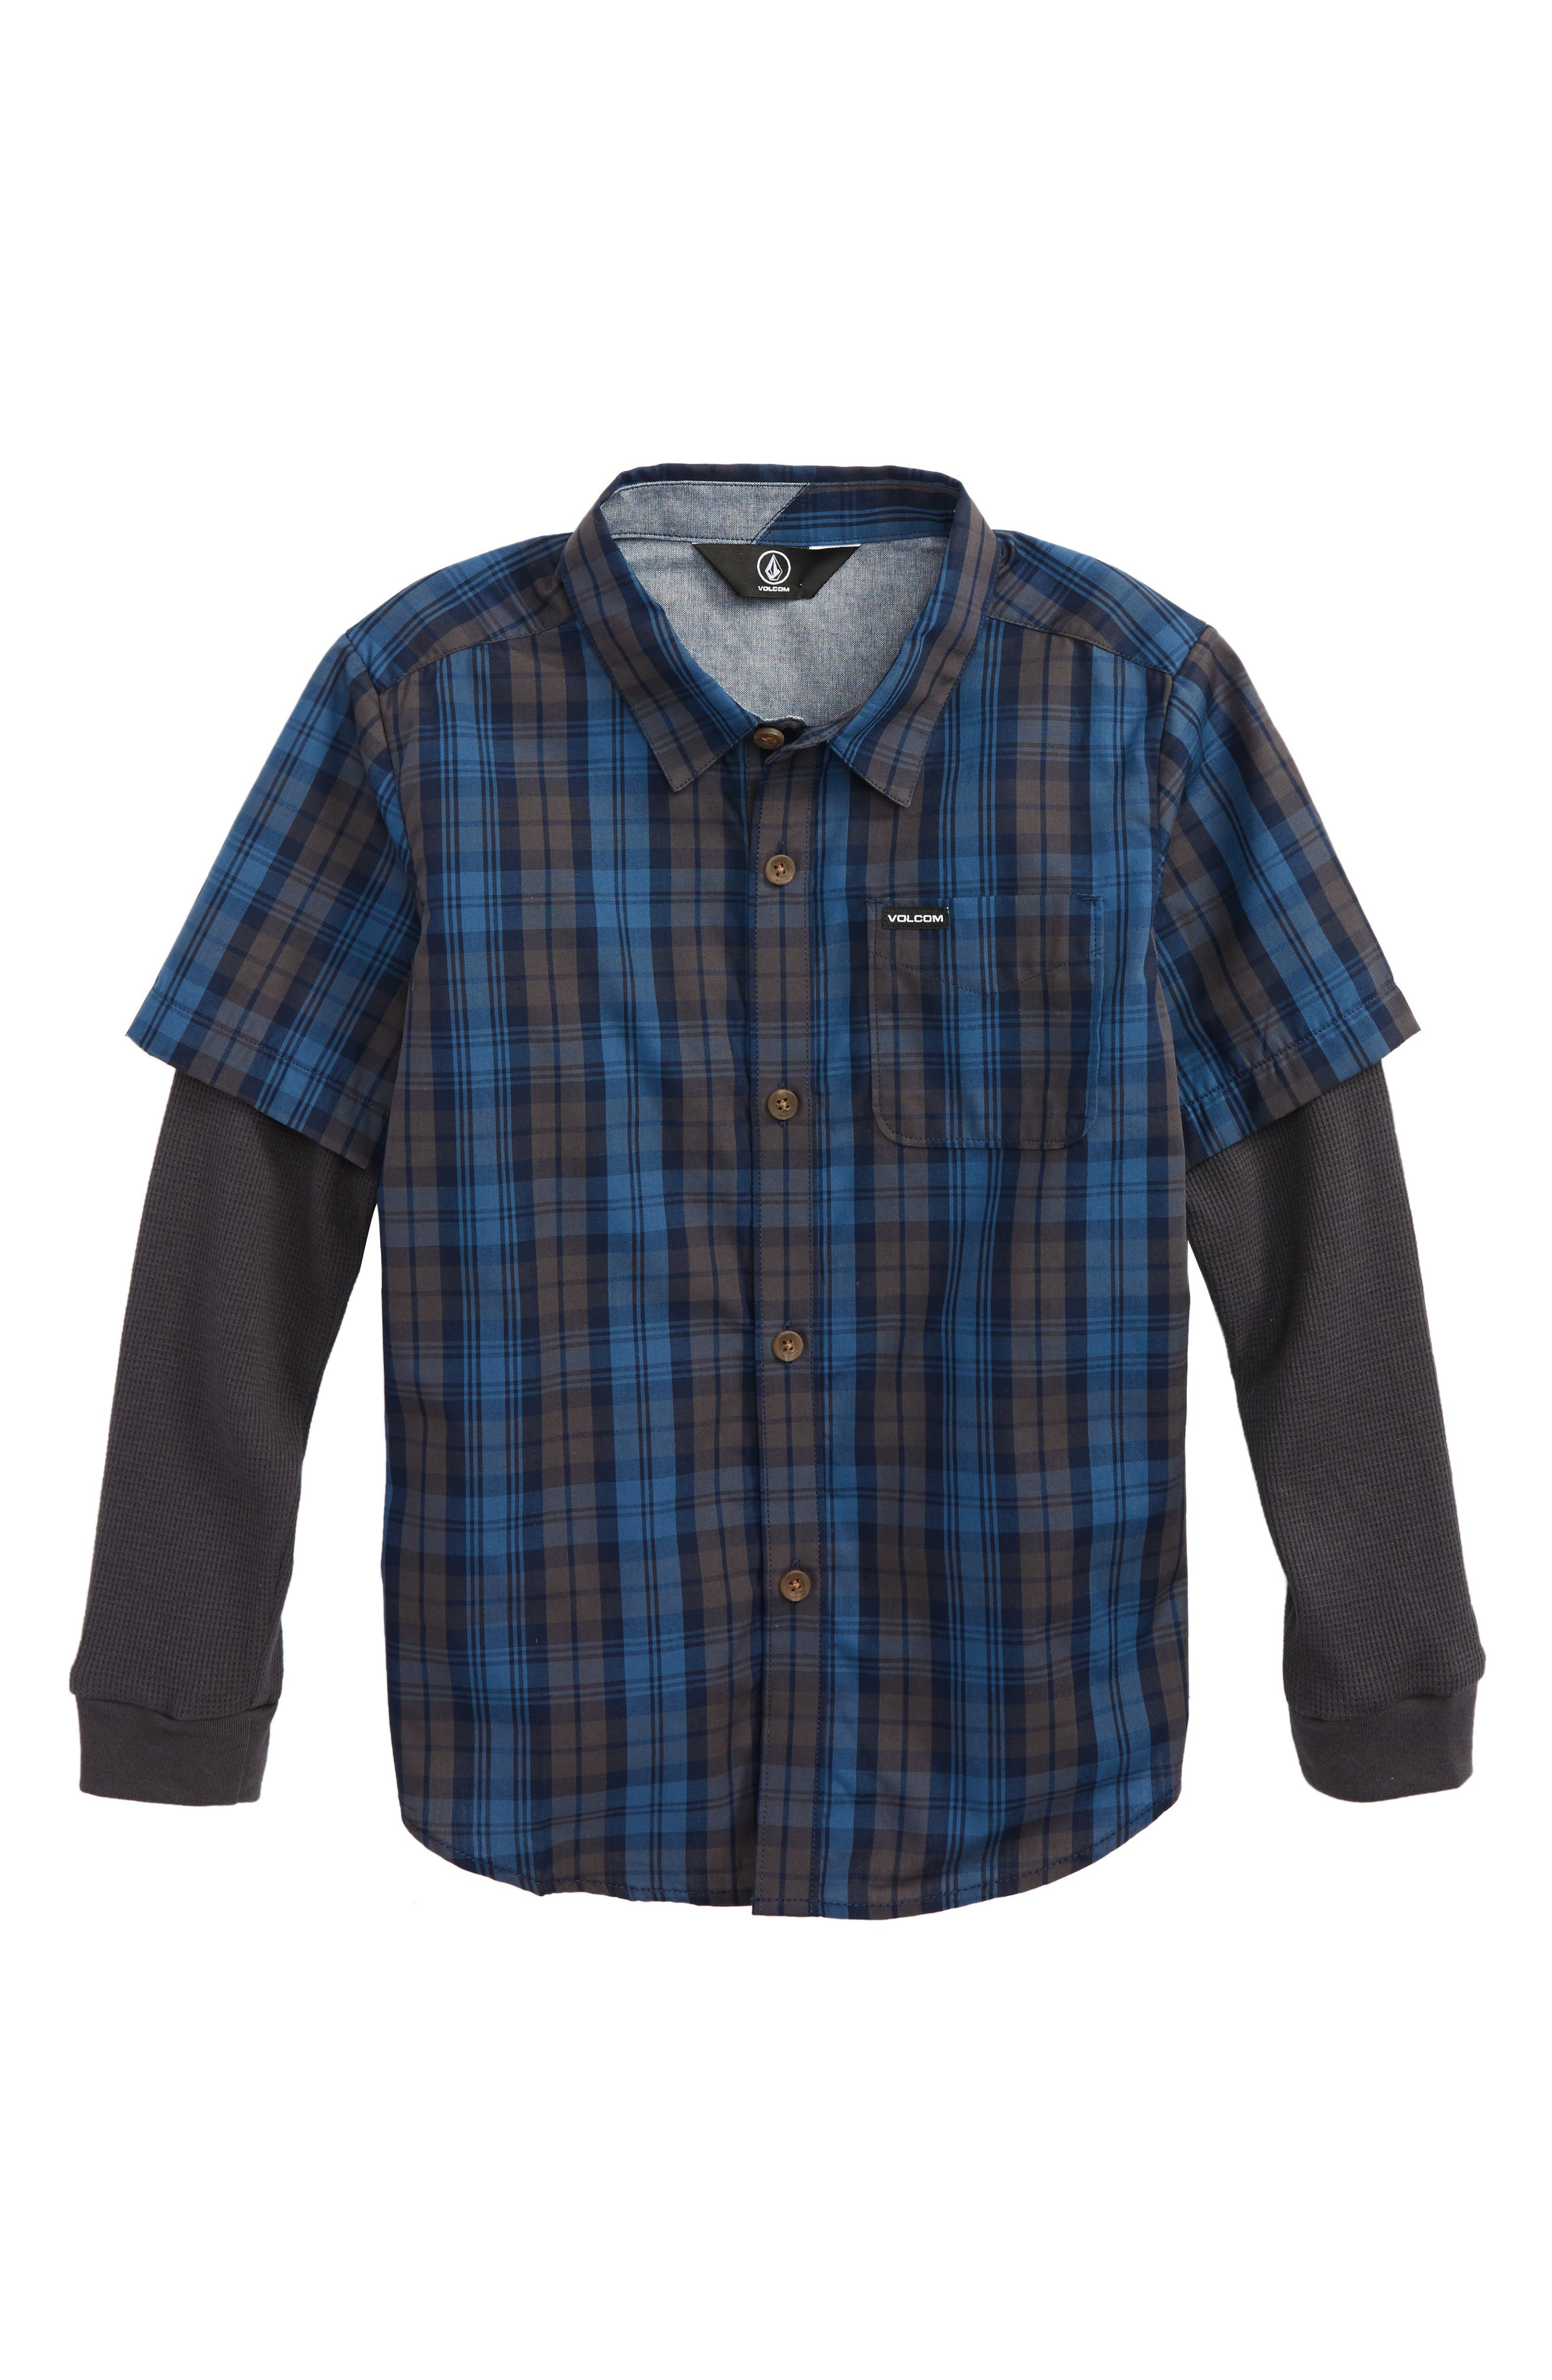 Ignition Layered Woven Shirt,                         Main,                         color,